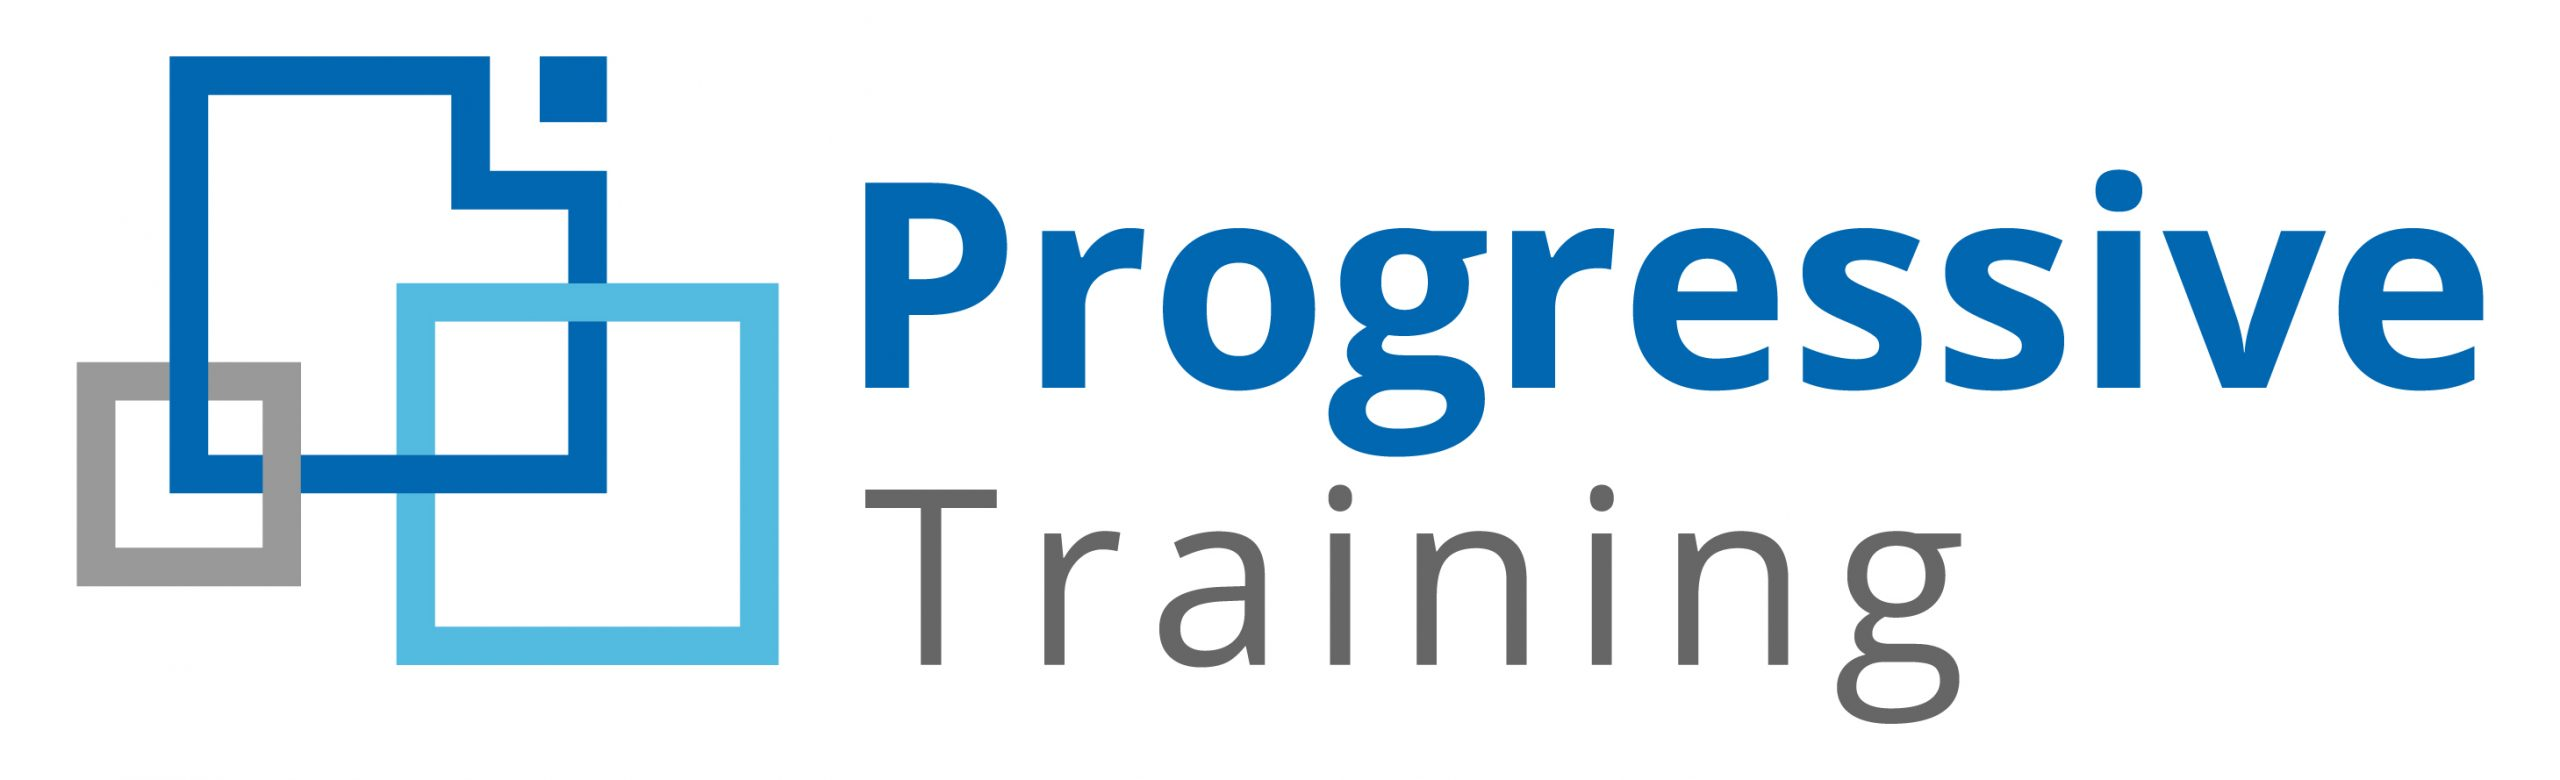 Progressive Training